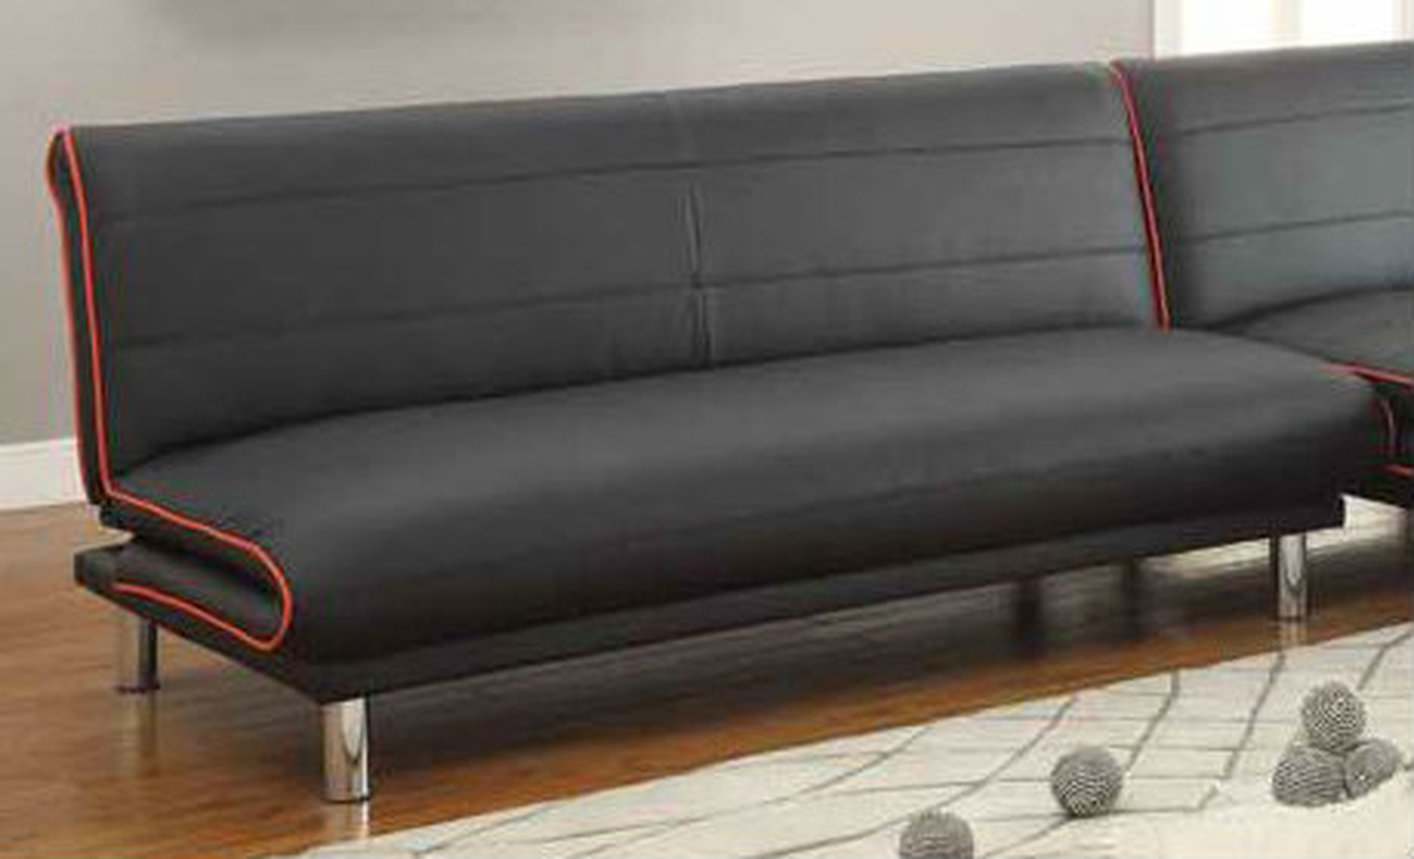 Coaster 500776 Black Leather Sofa Bed Steal A Sofa Furniture Outlet Los Angeles Ca